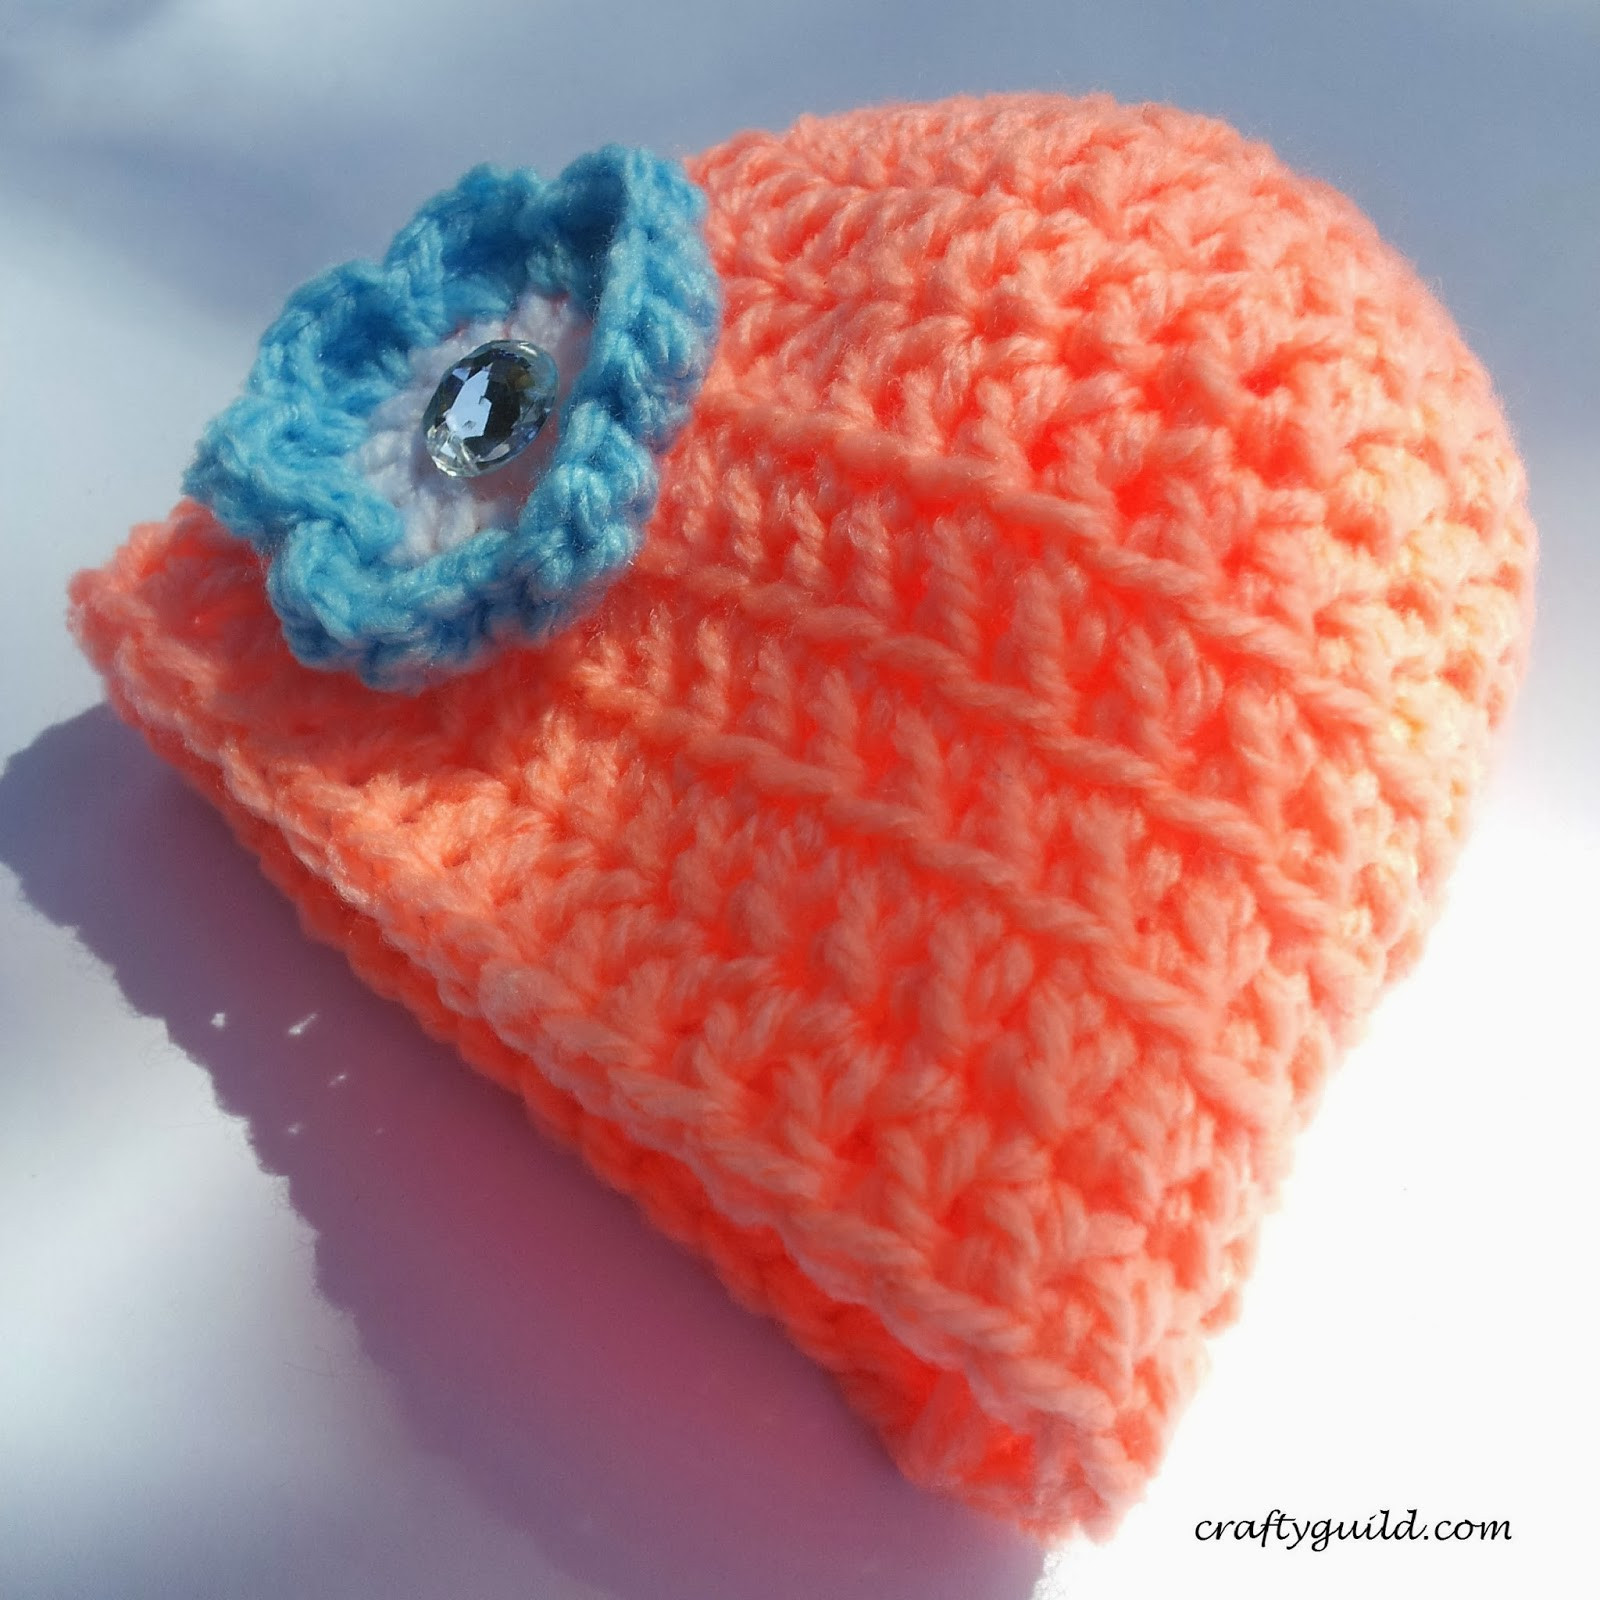 Luxury New Born Baby Girl Crochet Hat for Beginners Crafty Guild Crochet Supplies for Beginners Of Marvelous 49 Ideas Crochet Supplies for Beginners